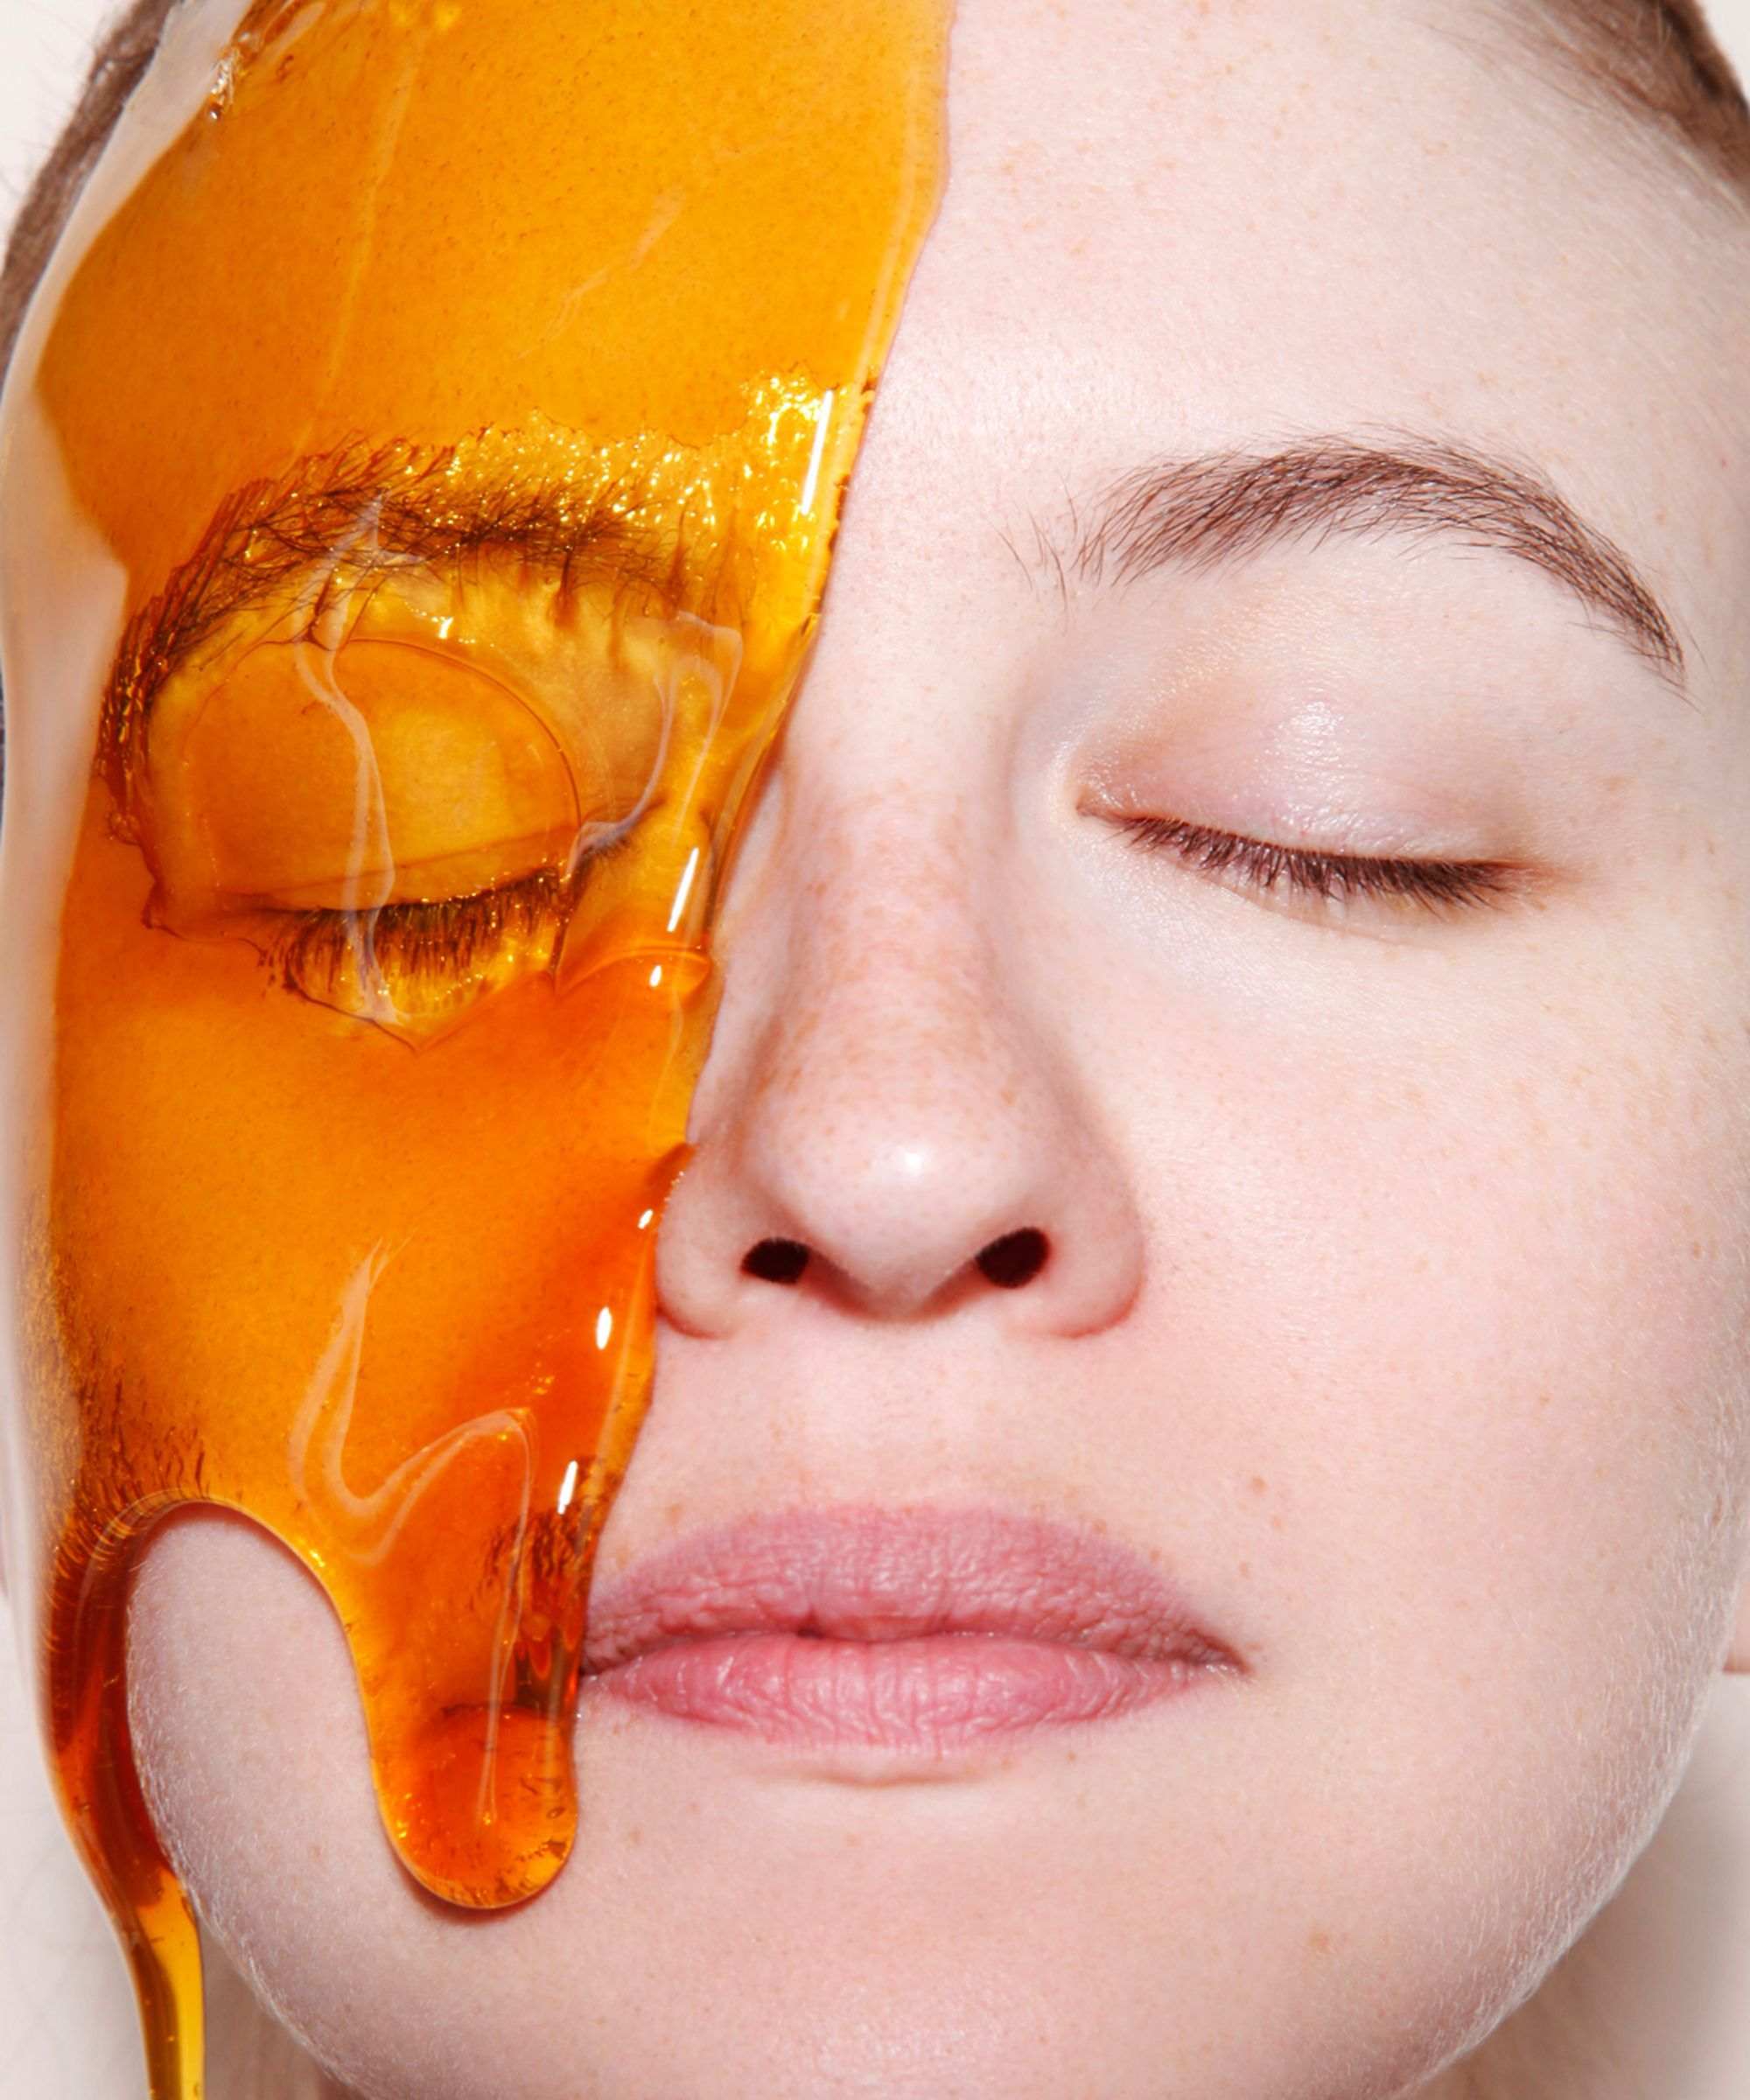 Homemade honey face wash for acne prone skin clear skin